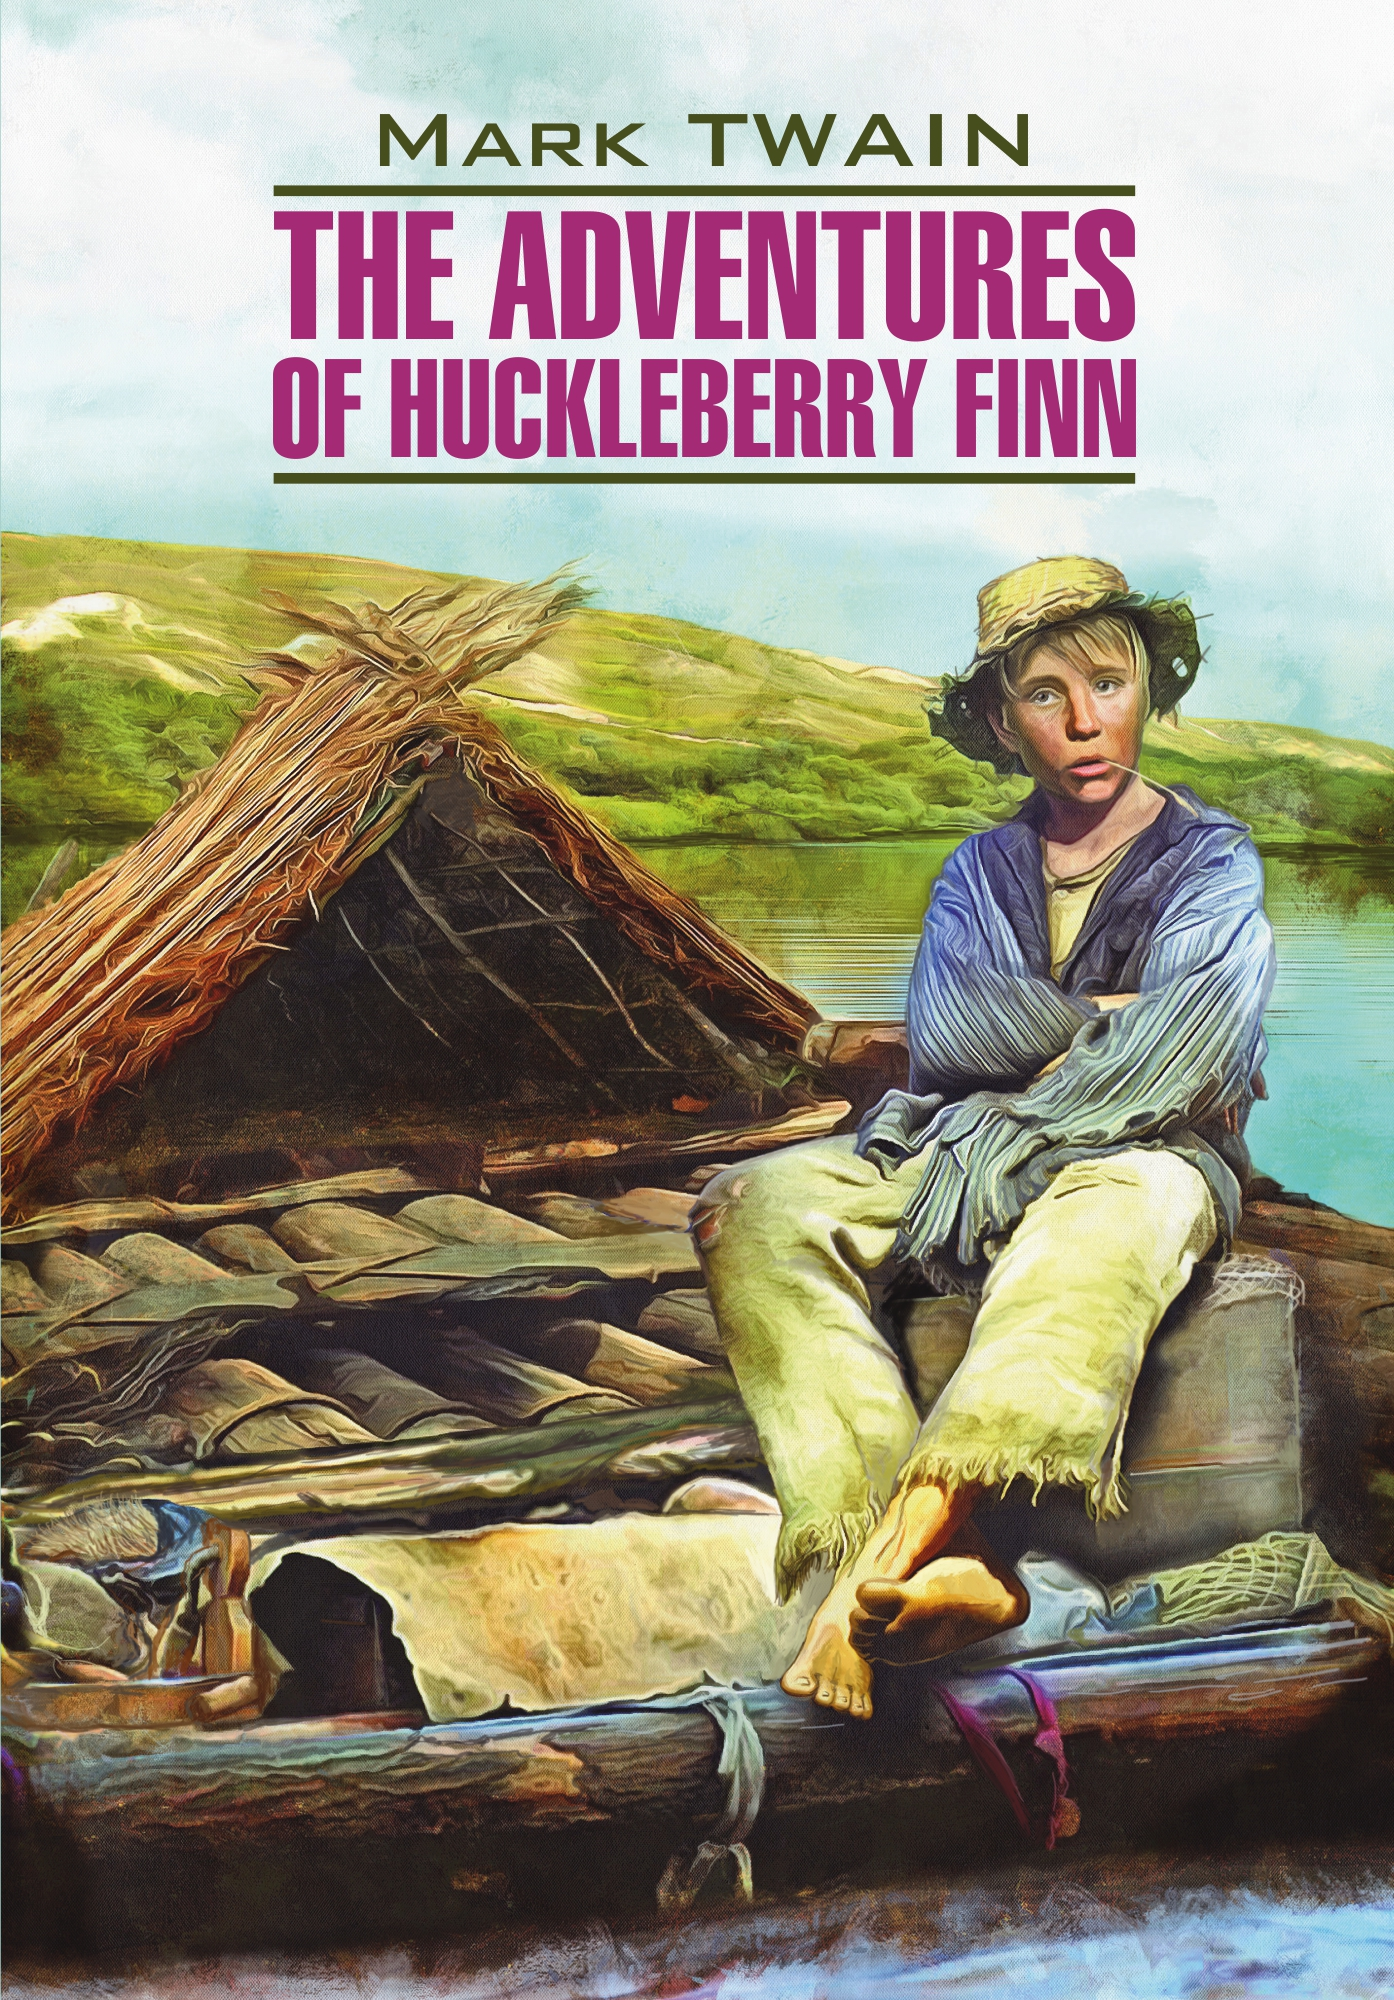 Марк Твен The Adventures of Huckleberry Finn / Приключения Гекльберри Финна. Книга для чтения на английском языке 6pair lot 3d kids socks cartoon pattern printing cotton children s girls boys baby kids socks 20 kind of style fit 2 10 year